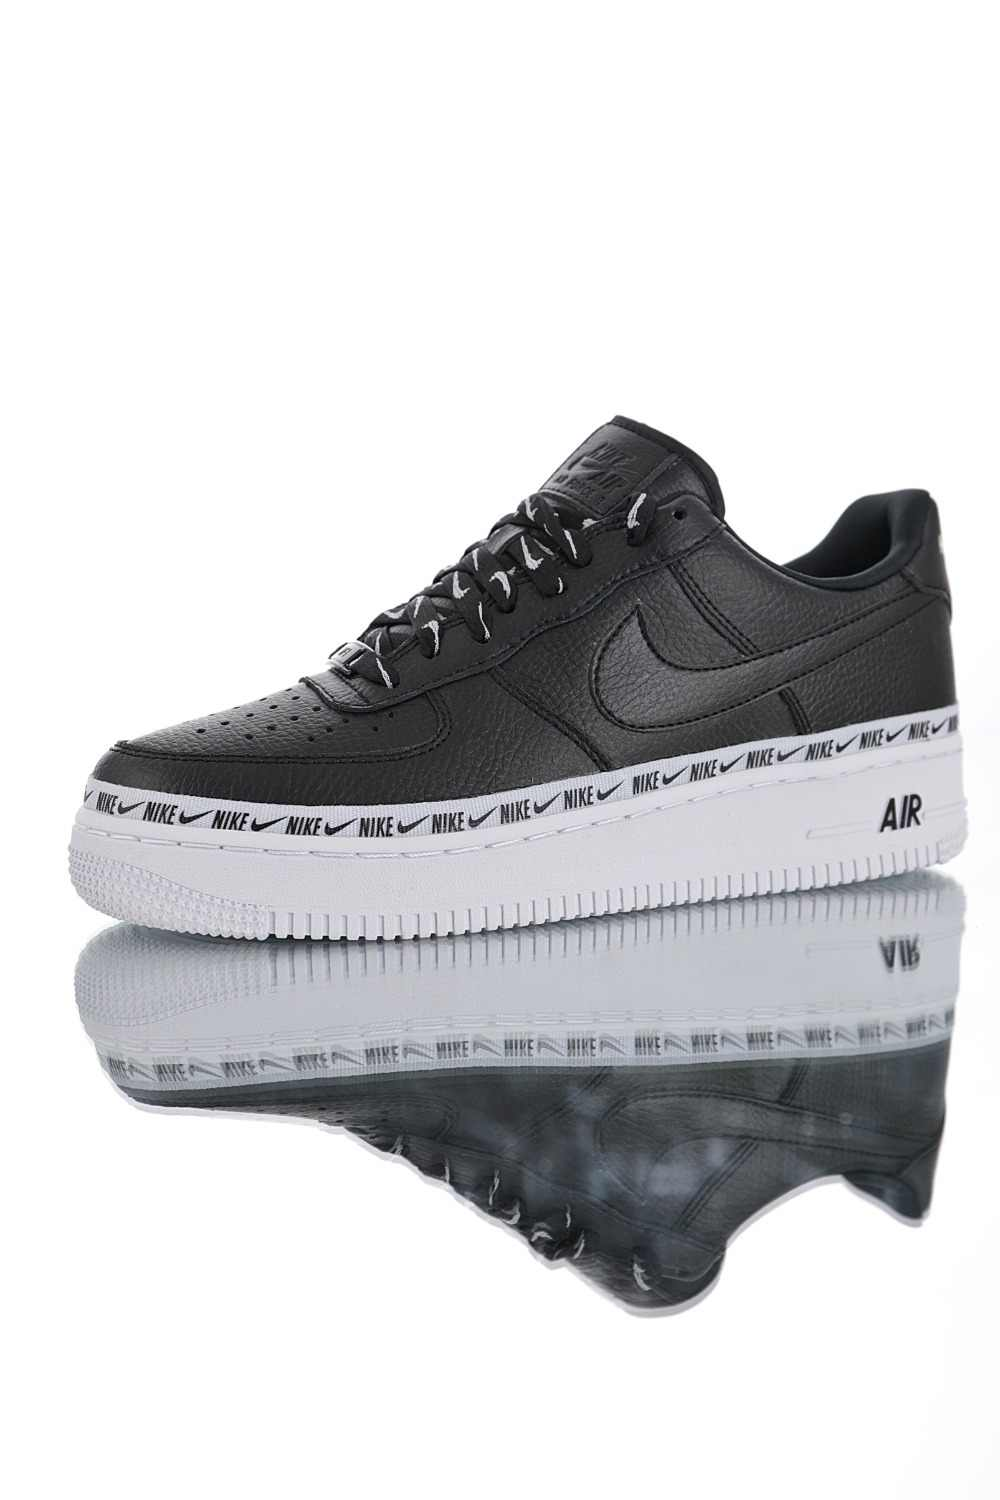 Original Official Nike Air Force 1 '07 SE Premium Women's and men's Breathable Skateboarding Shoes Trainers AH6827 002